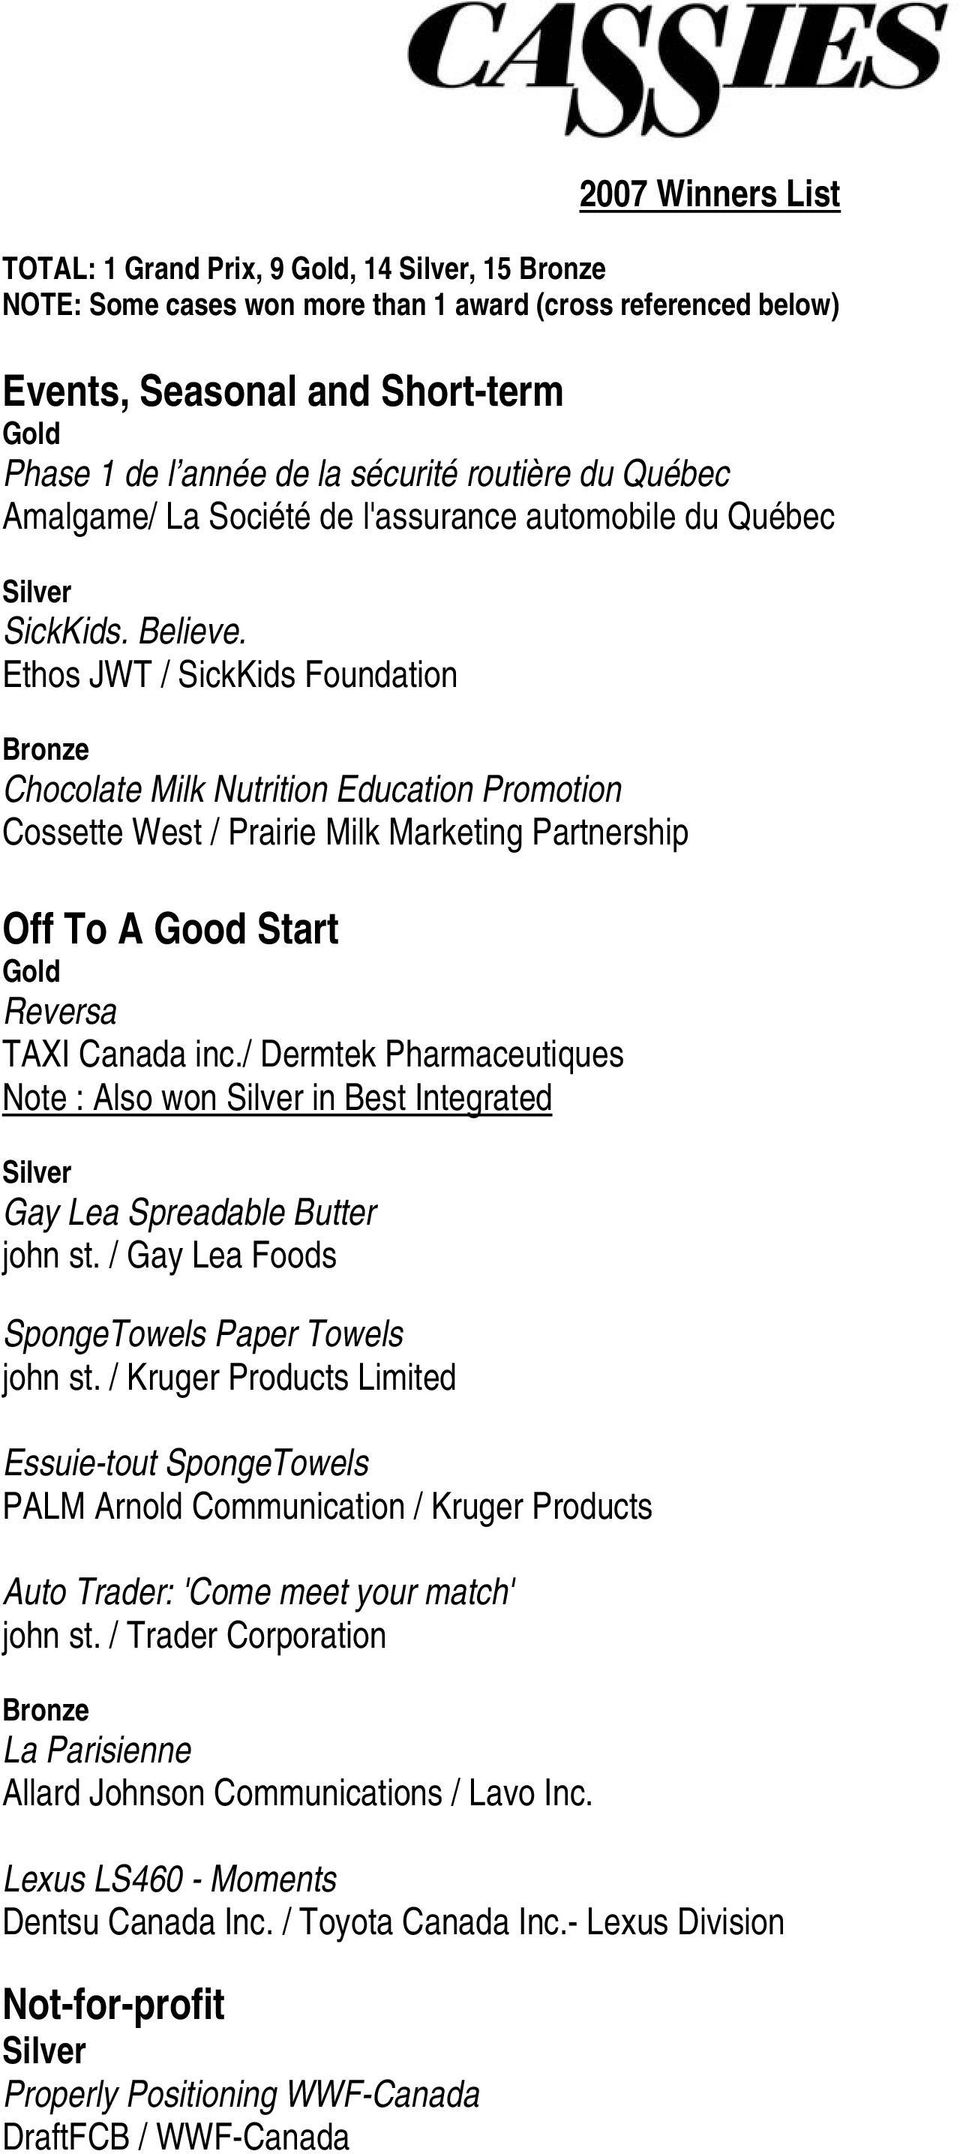 Ethos JWT / SickKids Foundation Chocolate Milk Nutrition Education Promotion Cossette West / Prairie Milk Marketing Partnership Off To A Good Start Reversa TAXI Canada inc.